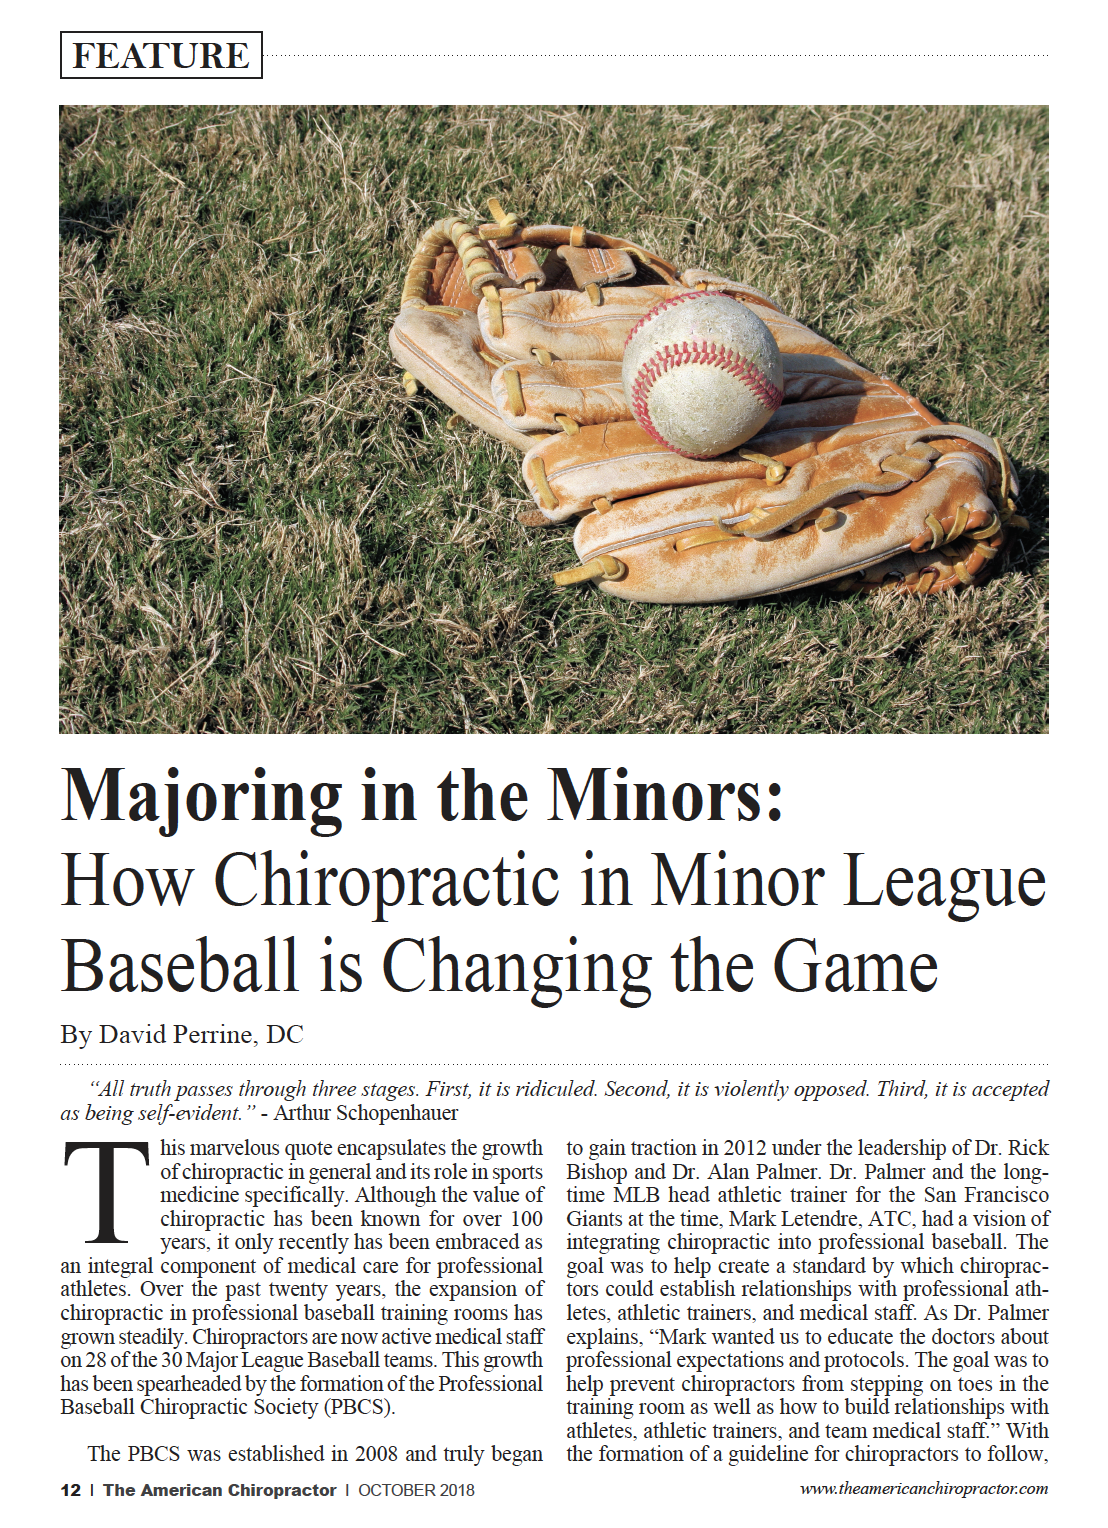 Majoring in the Minors Article